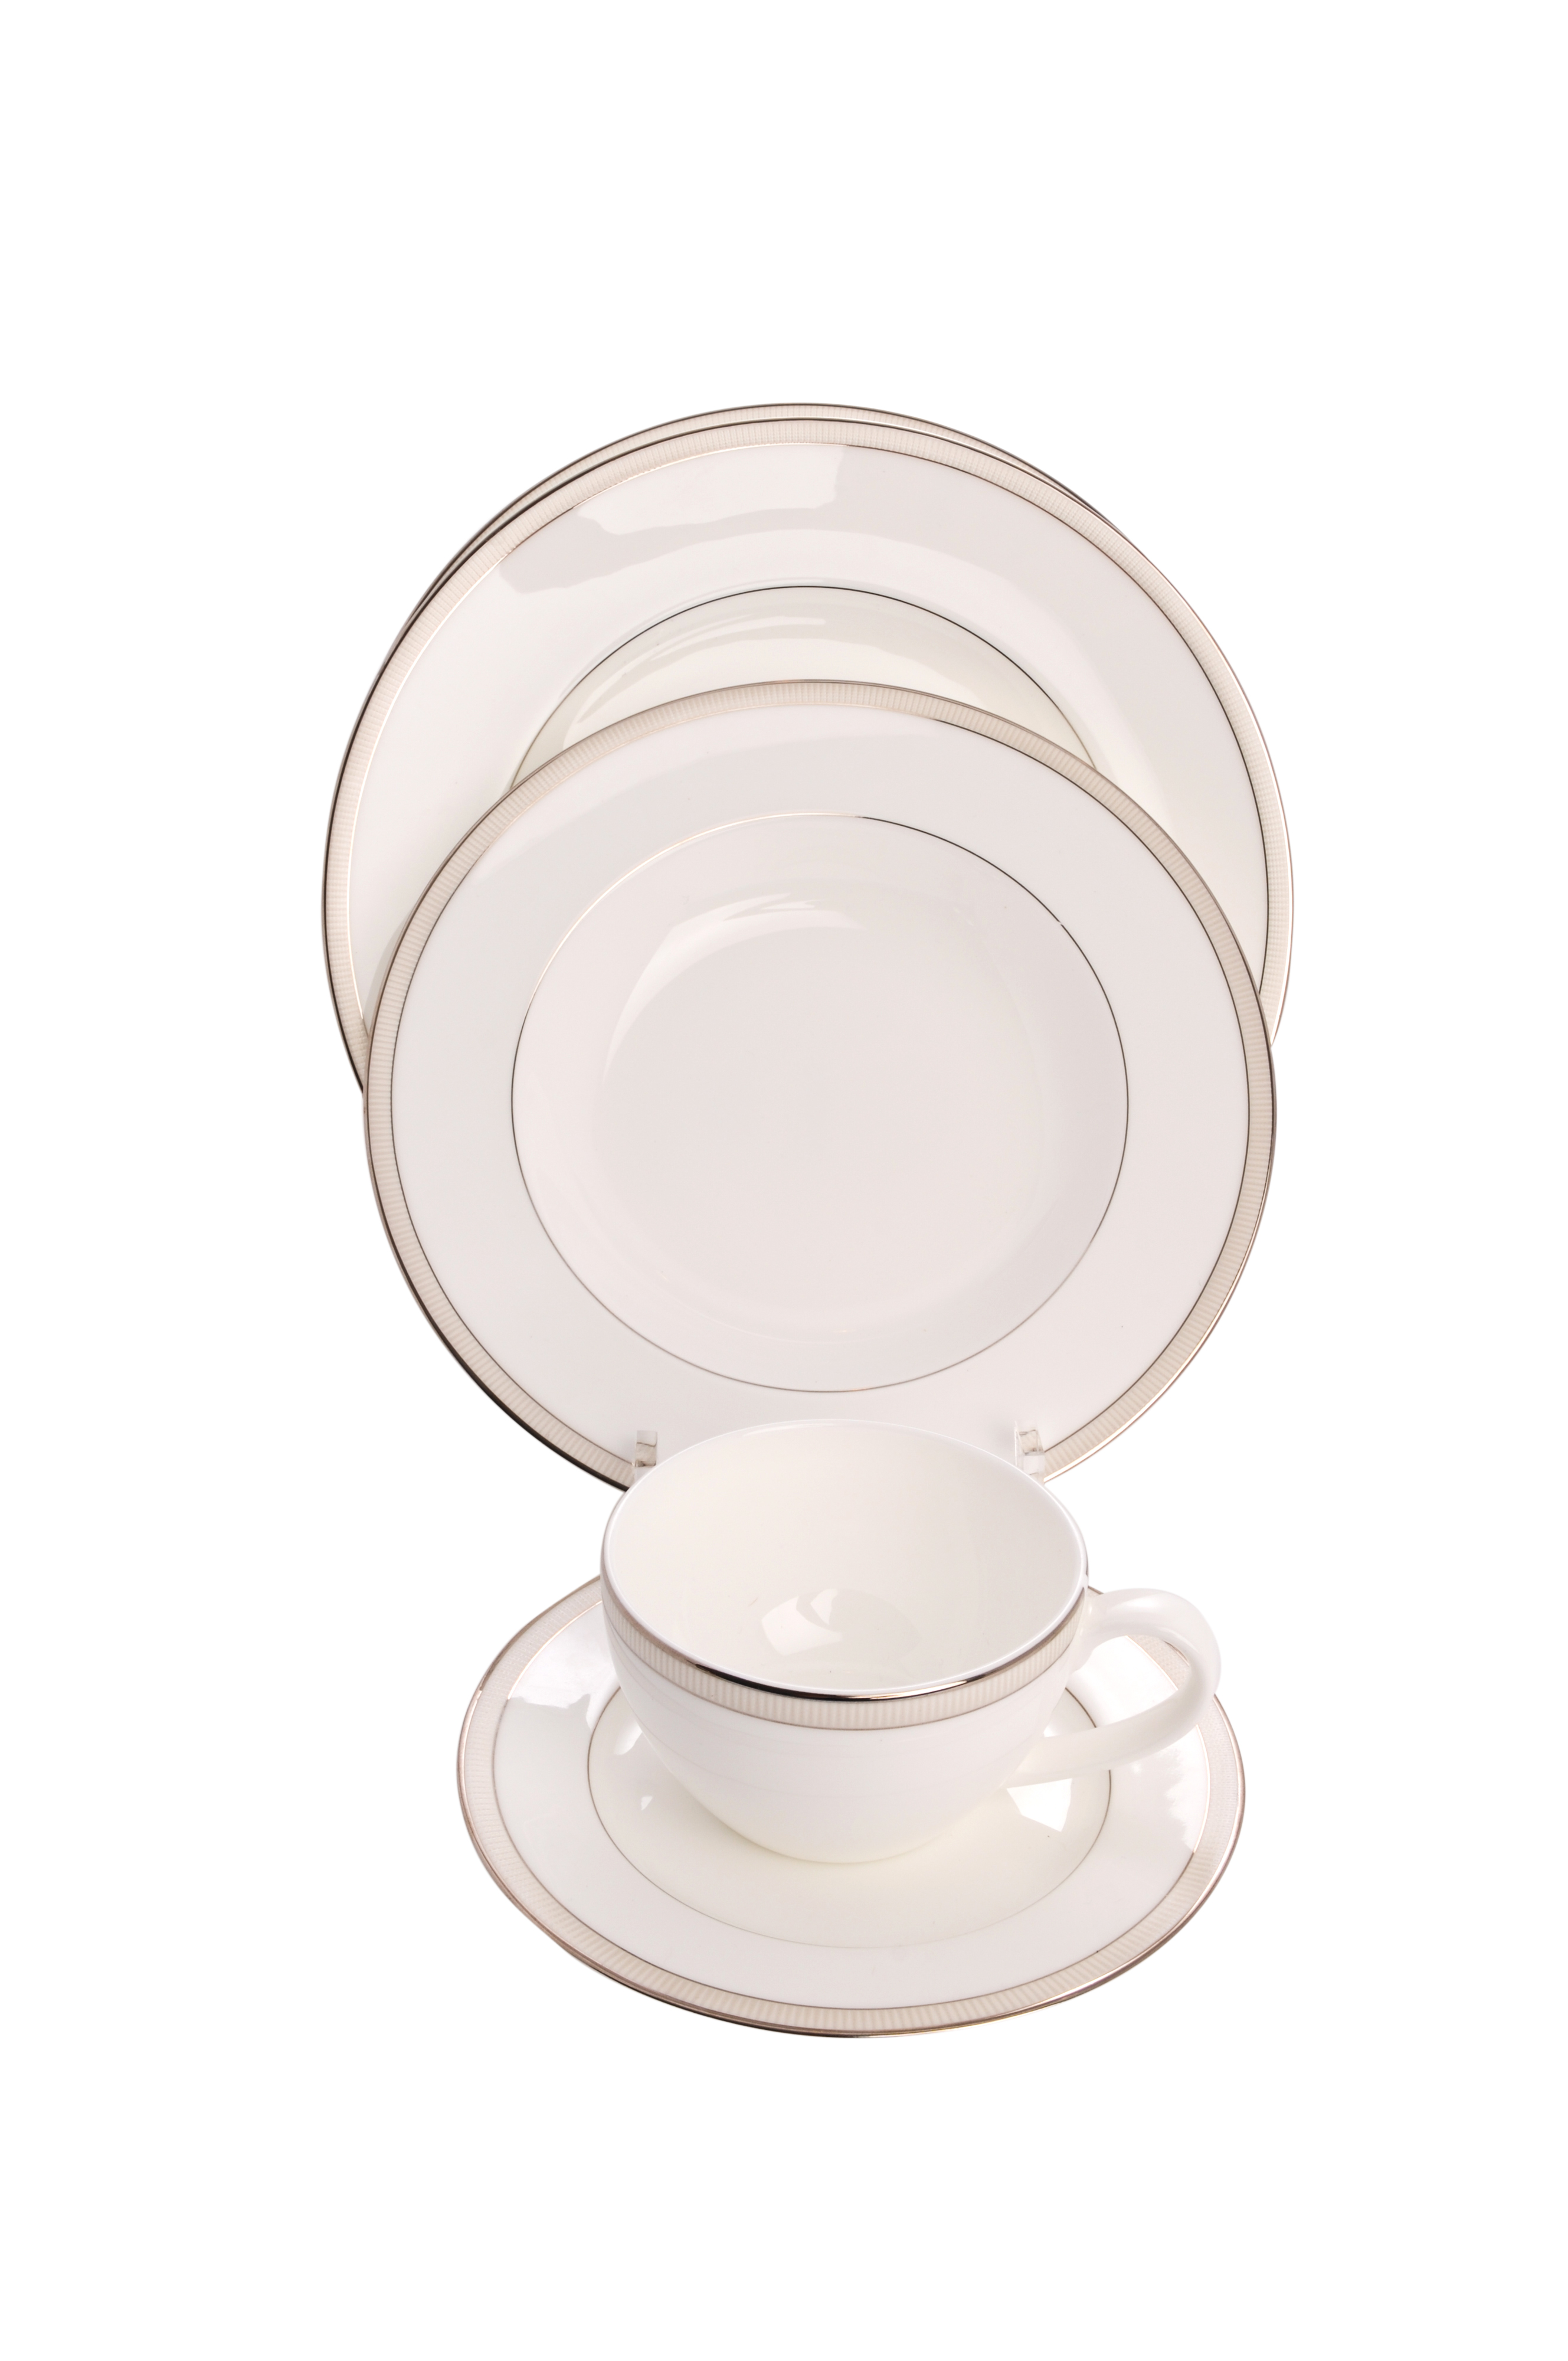 $25.40 each  sc 1 st  THB Products LLC & Clear Acrylic 5 Piece Dinnerware / China / Place Setting with a Bowl ...